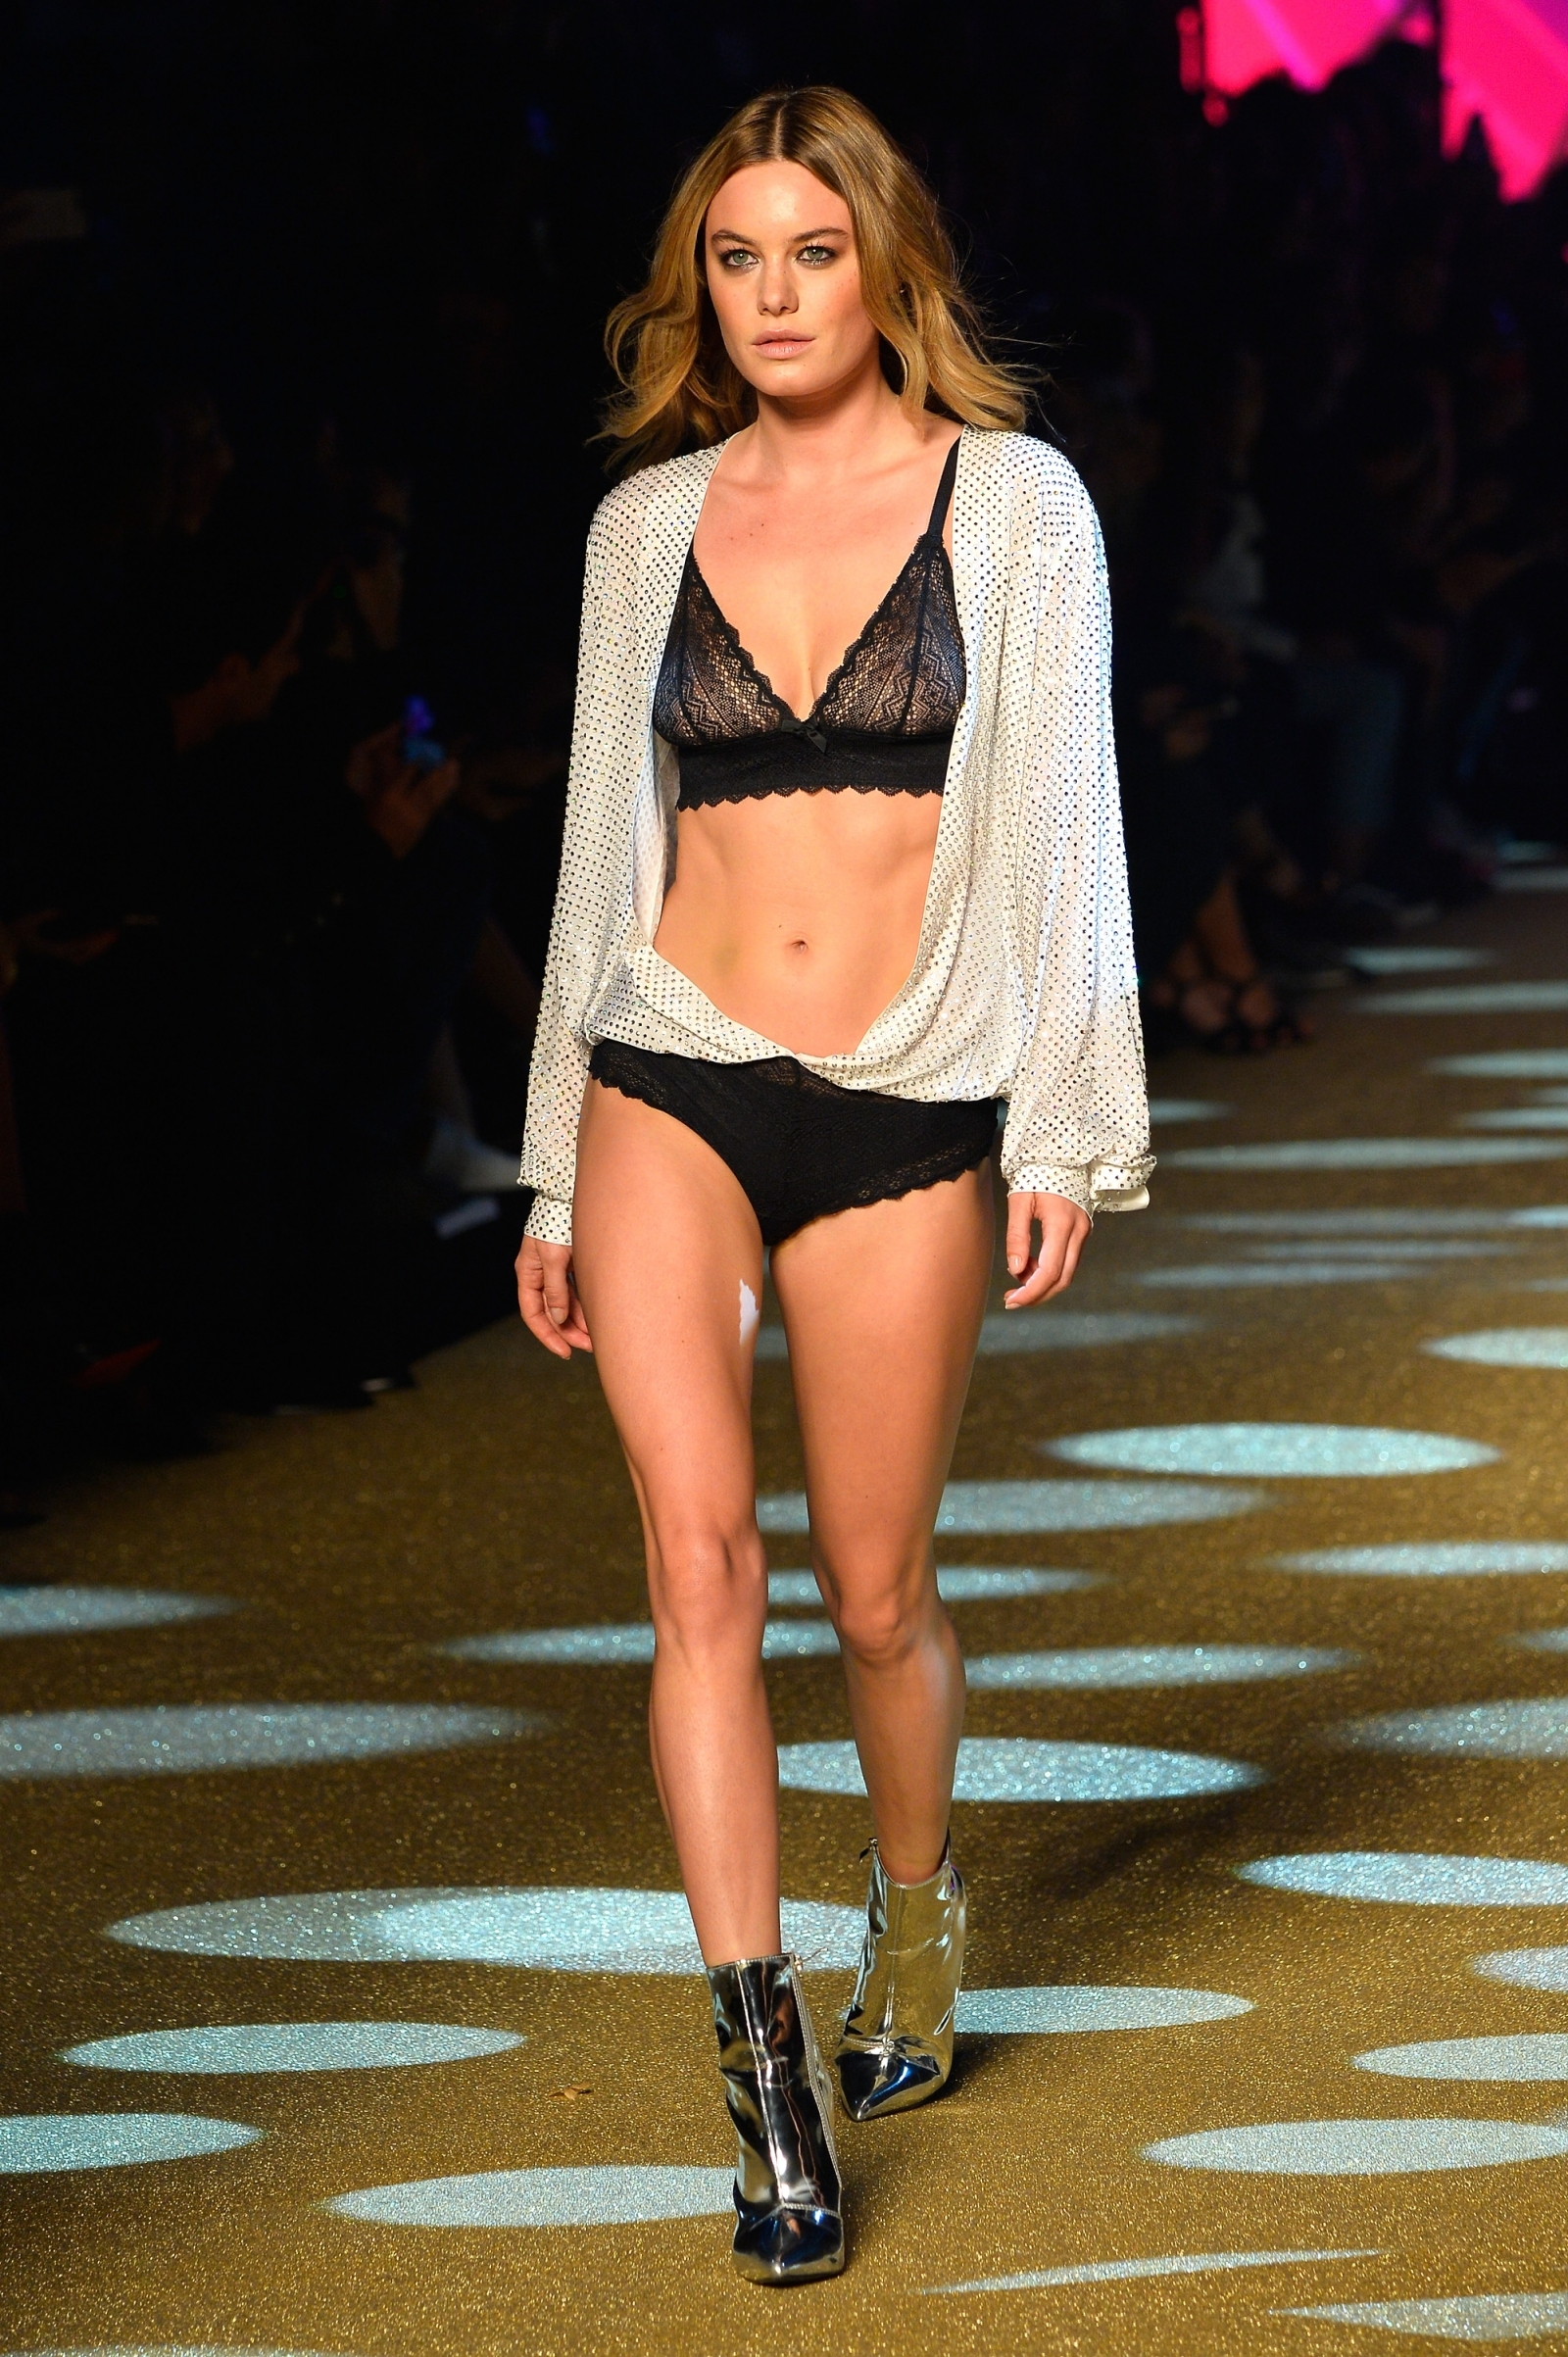 Image result for CAMILLE ROWE